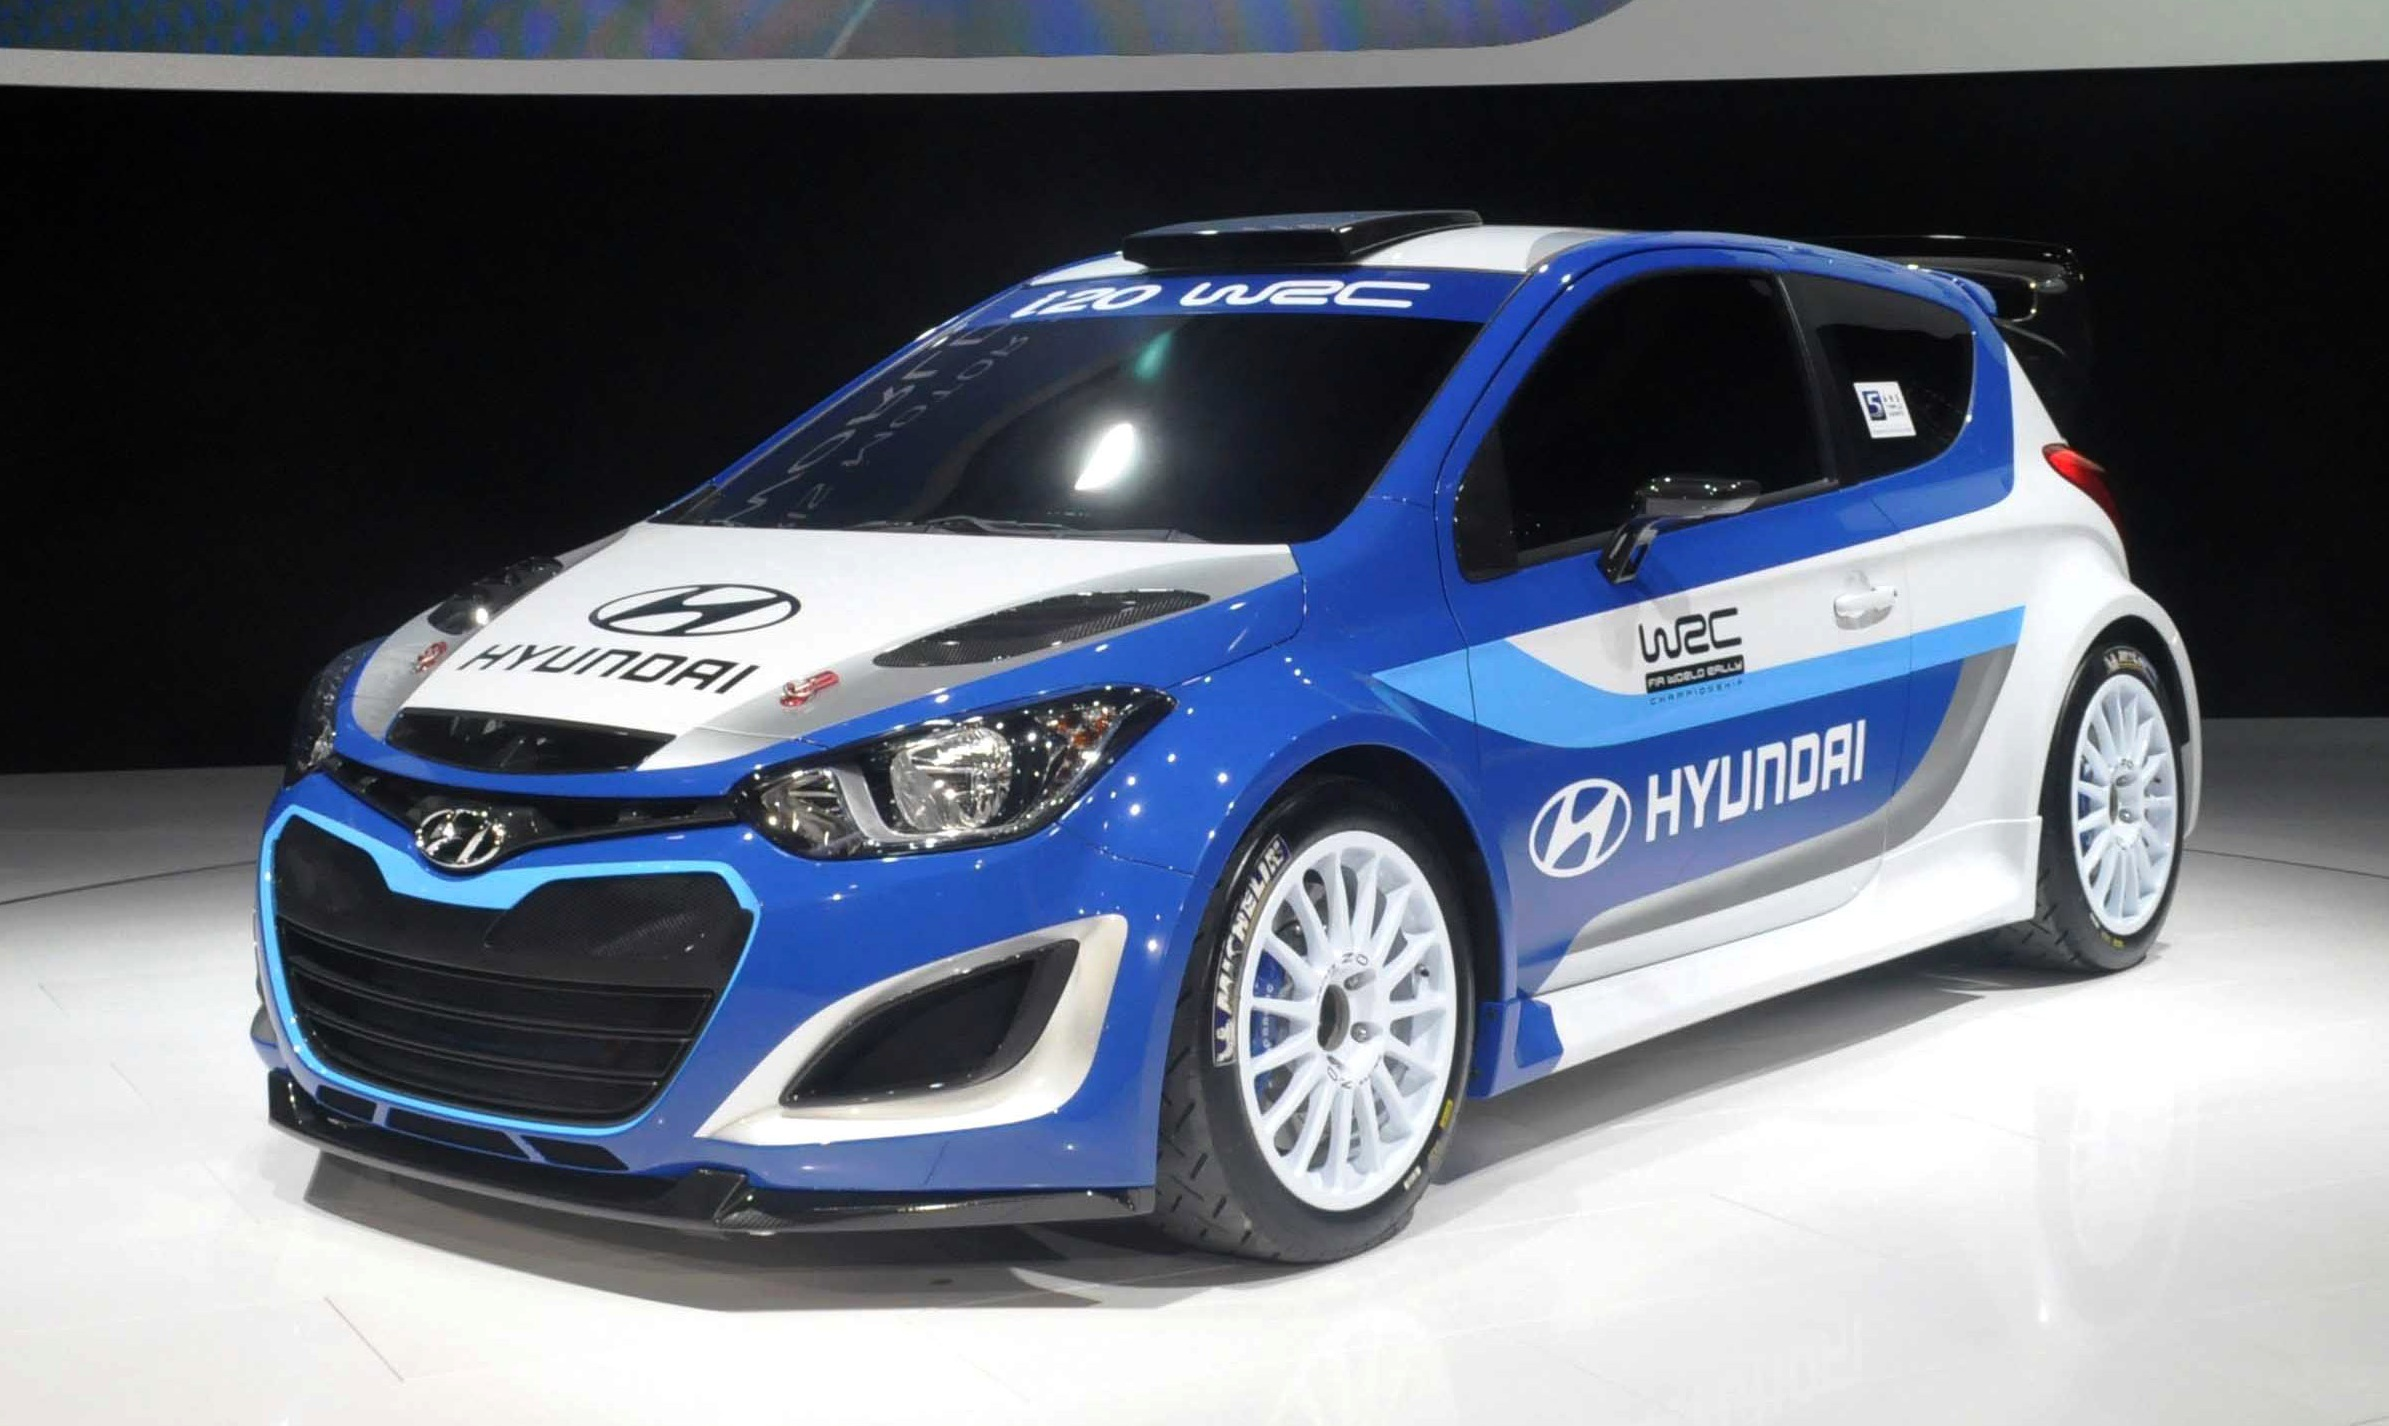 Hyundai I20 Wrc The Return To Rallying In 2013 Image 134479